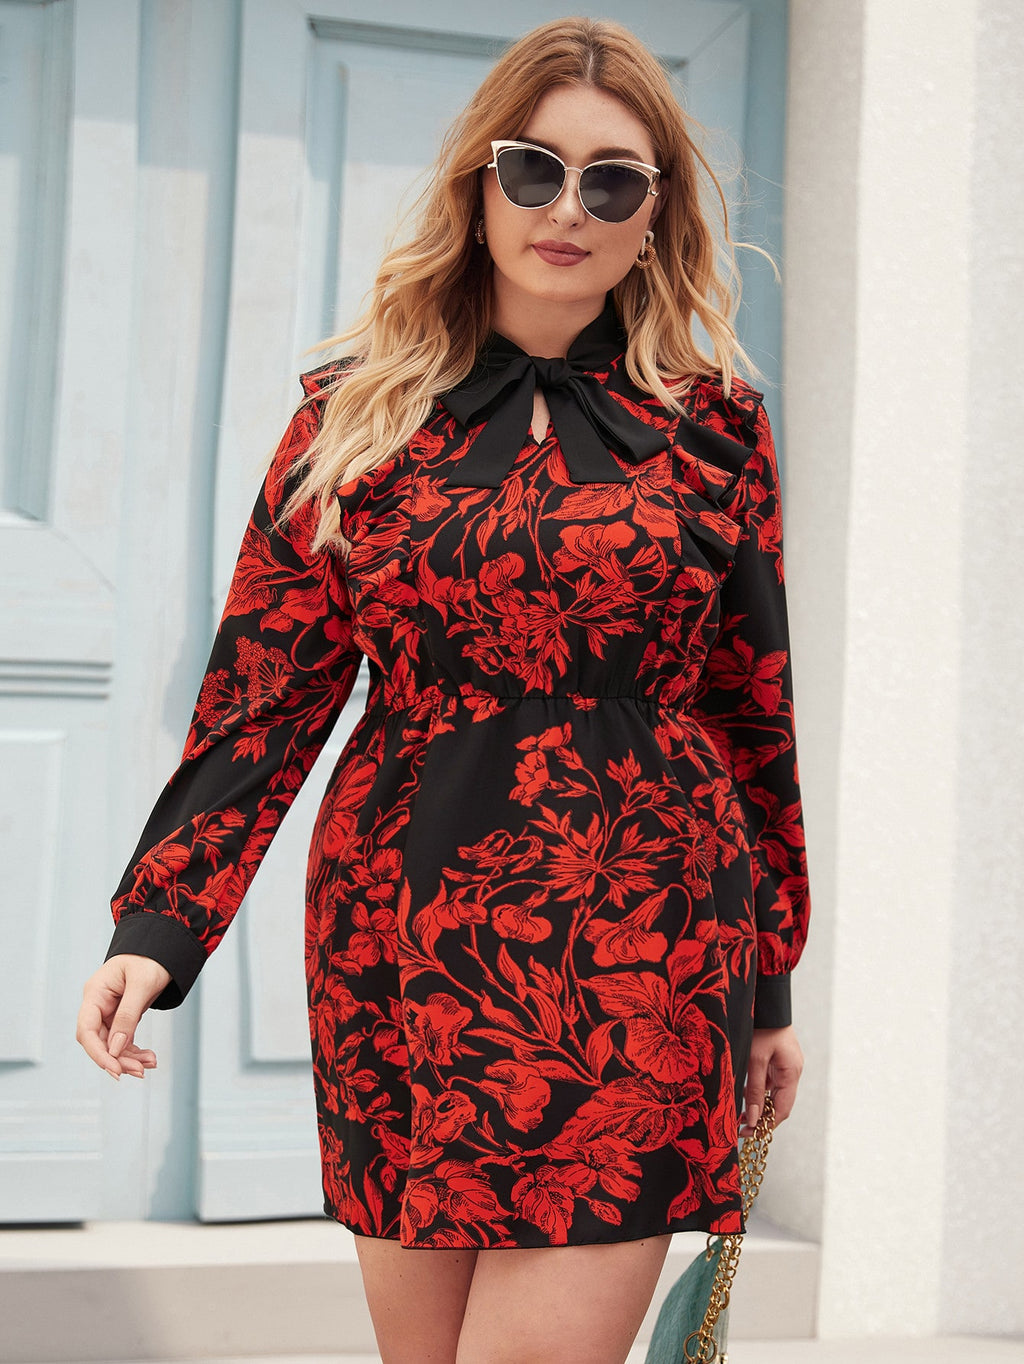 Plus Size Elegant Floral Print Tie Neck Fitted Dress